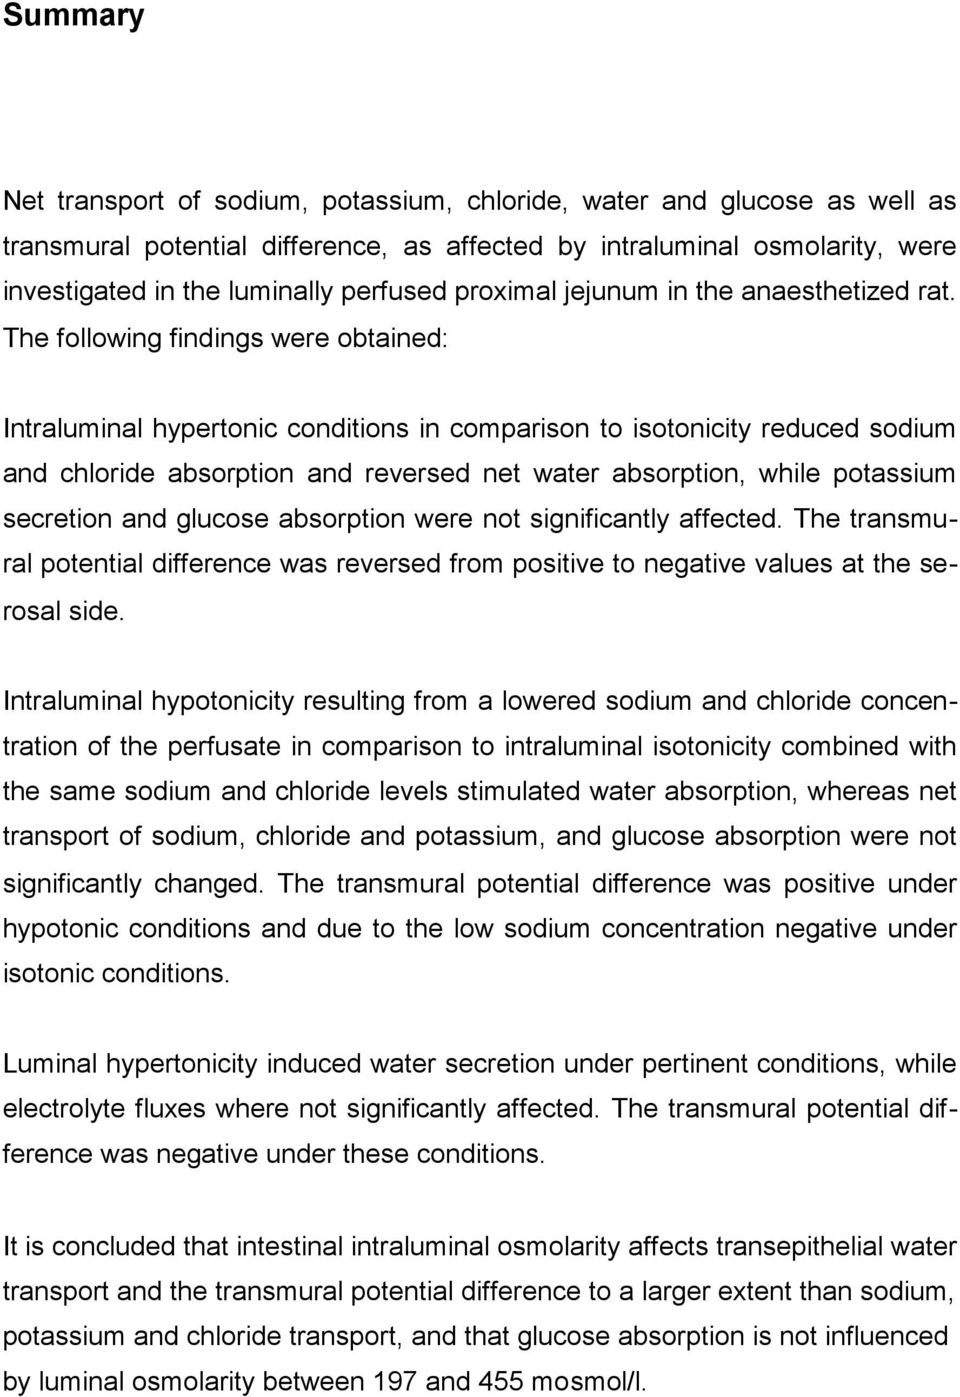 The following findings were obtained: Intraluminal hypertonic conditions in comparison to isotonicity reduced sodium and chloride absorption and reversed net water absorption, while potassium